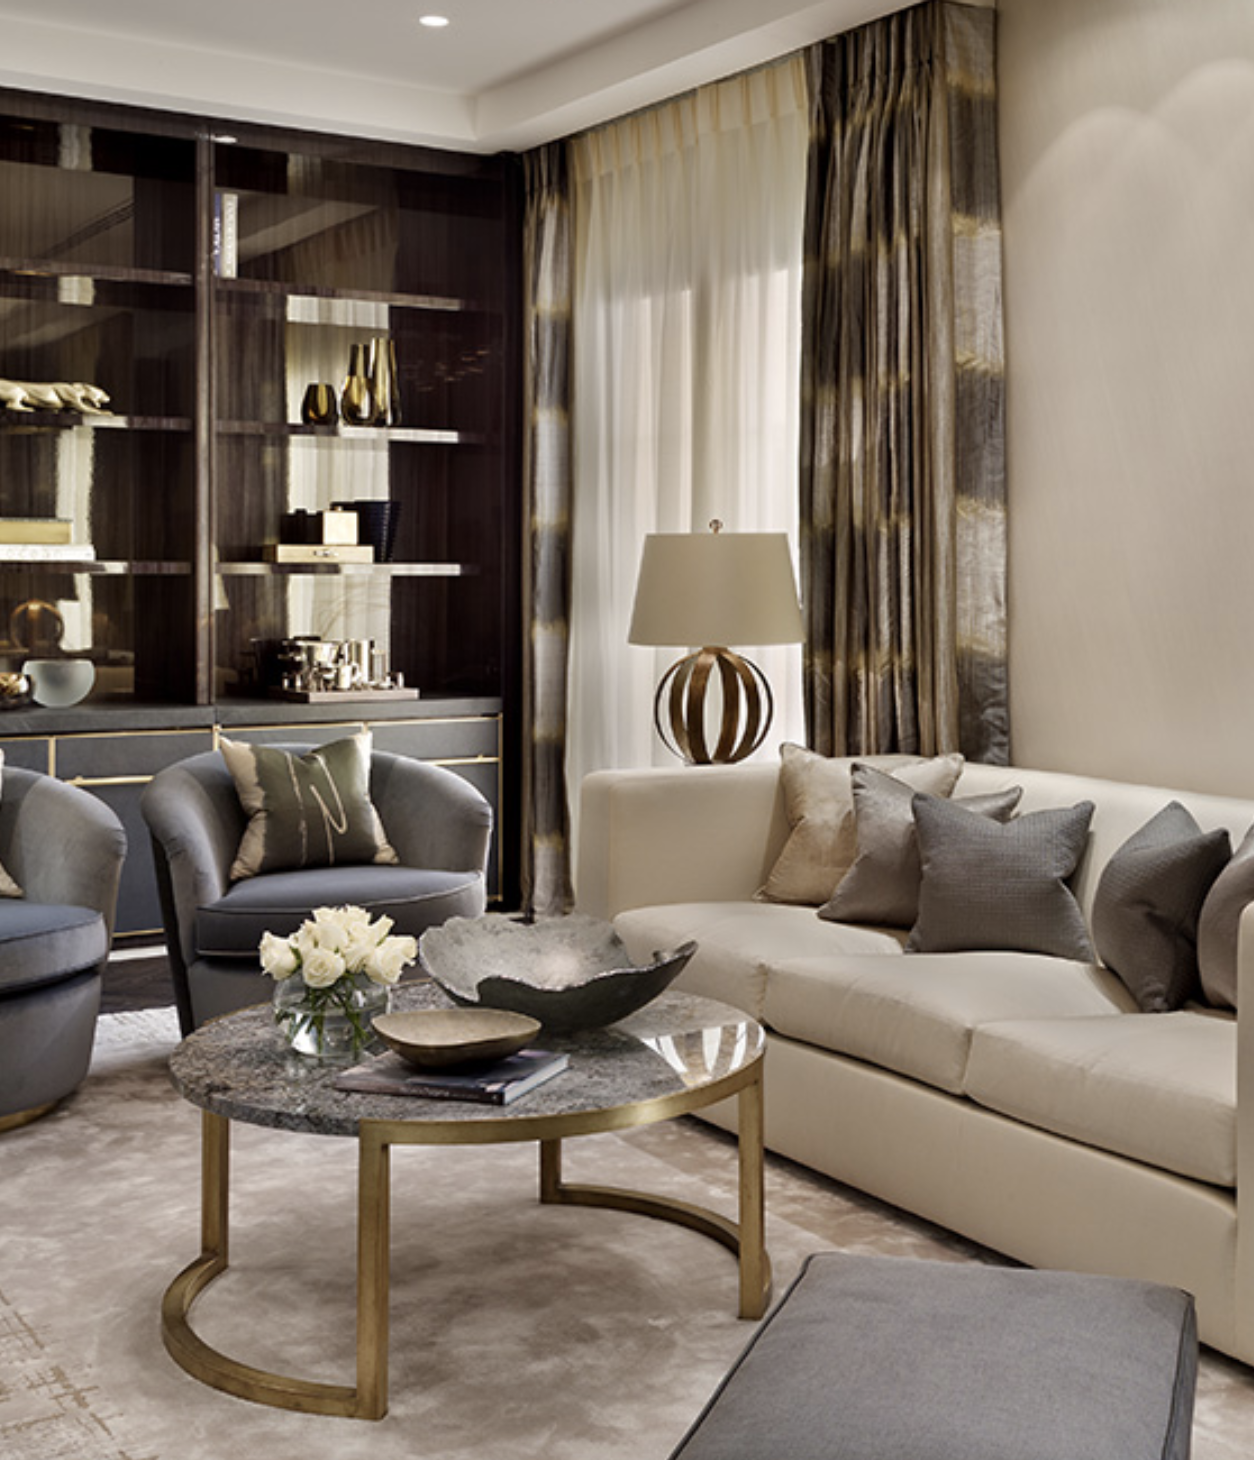 Katharine Pooley Luxury Elegant And Beautiful Living Room With Gold Circle Center Table Be Living Room Designs Furniture Design Modern Luxury Interior Design